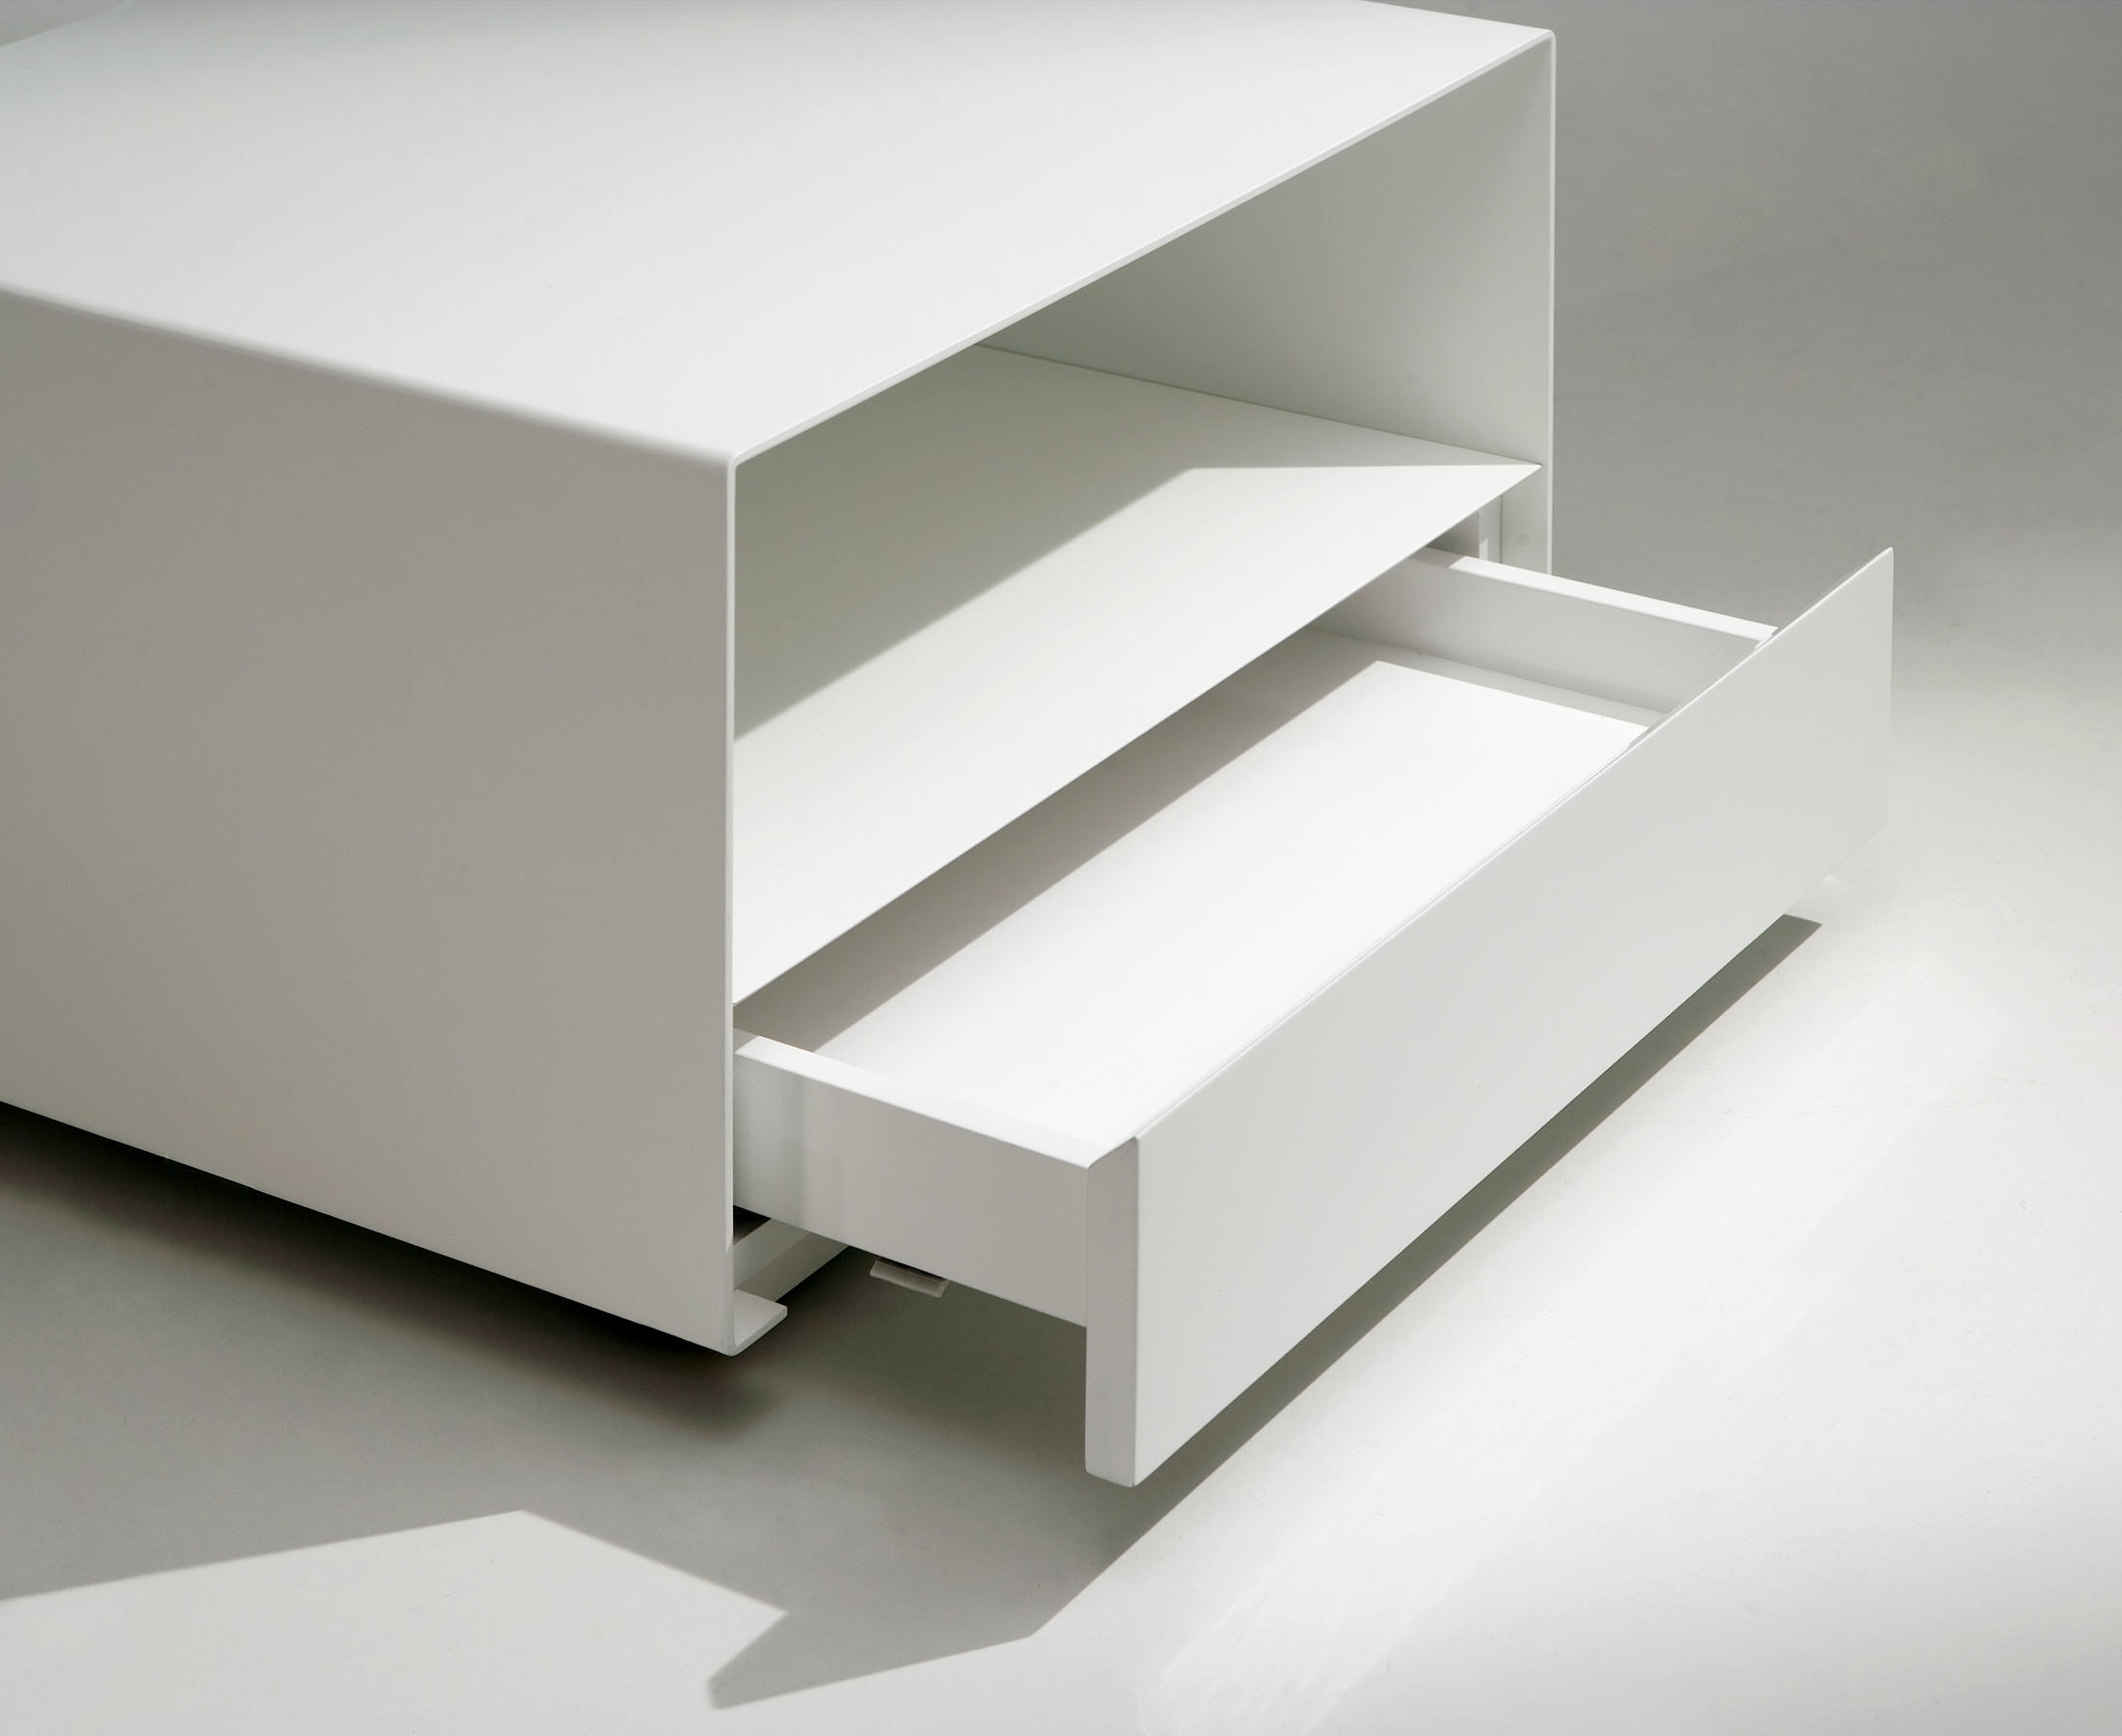 Kobo table set couchtische von kendo mobiliario architonic - Kendo mobiliario ...